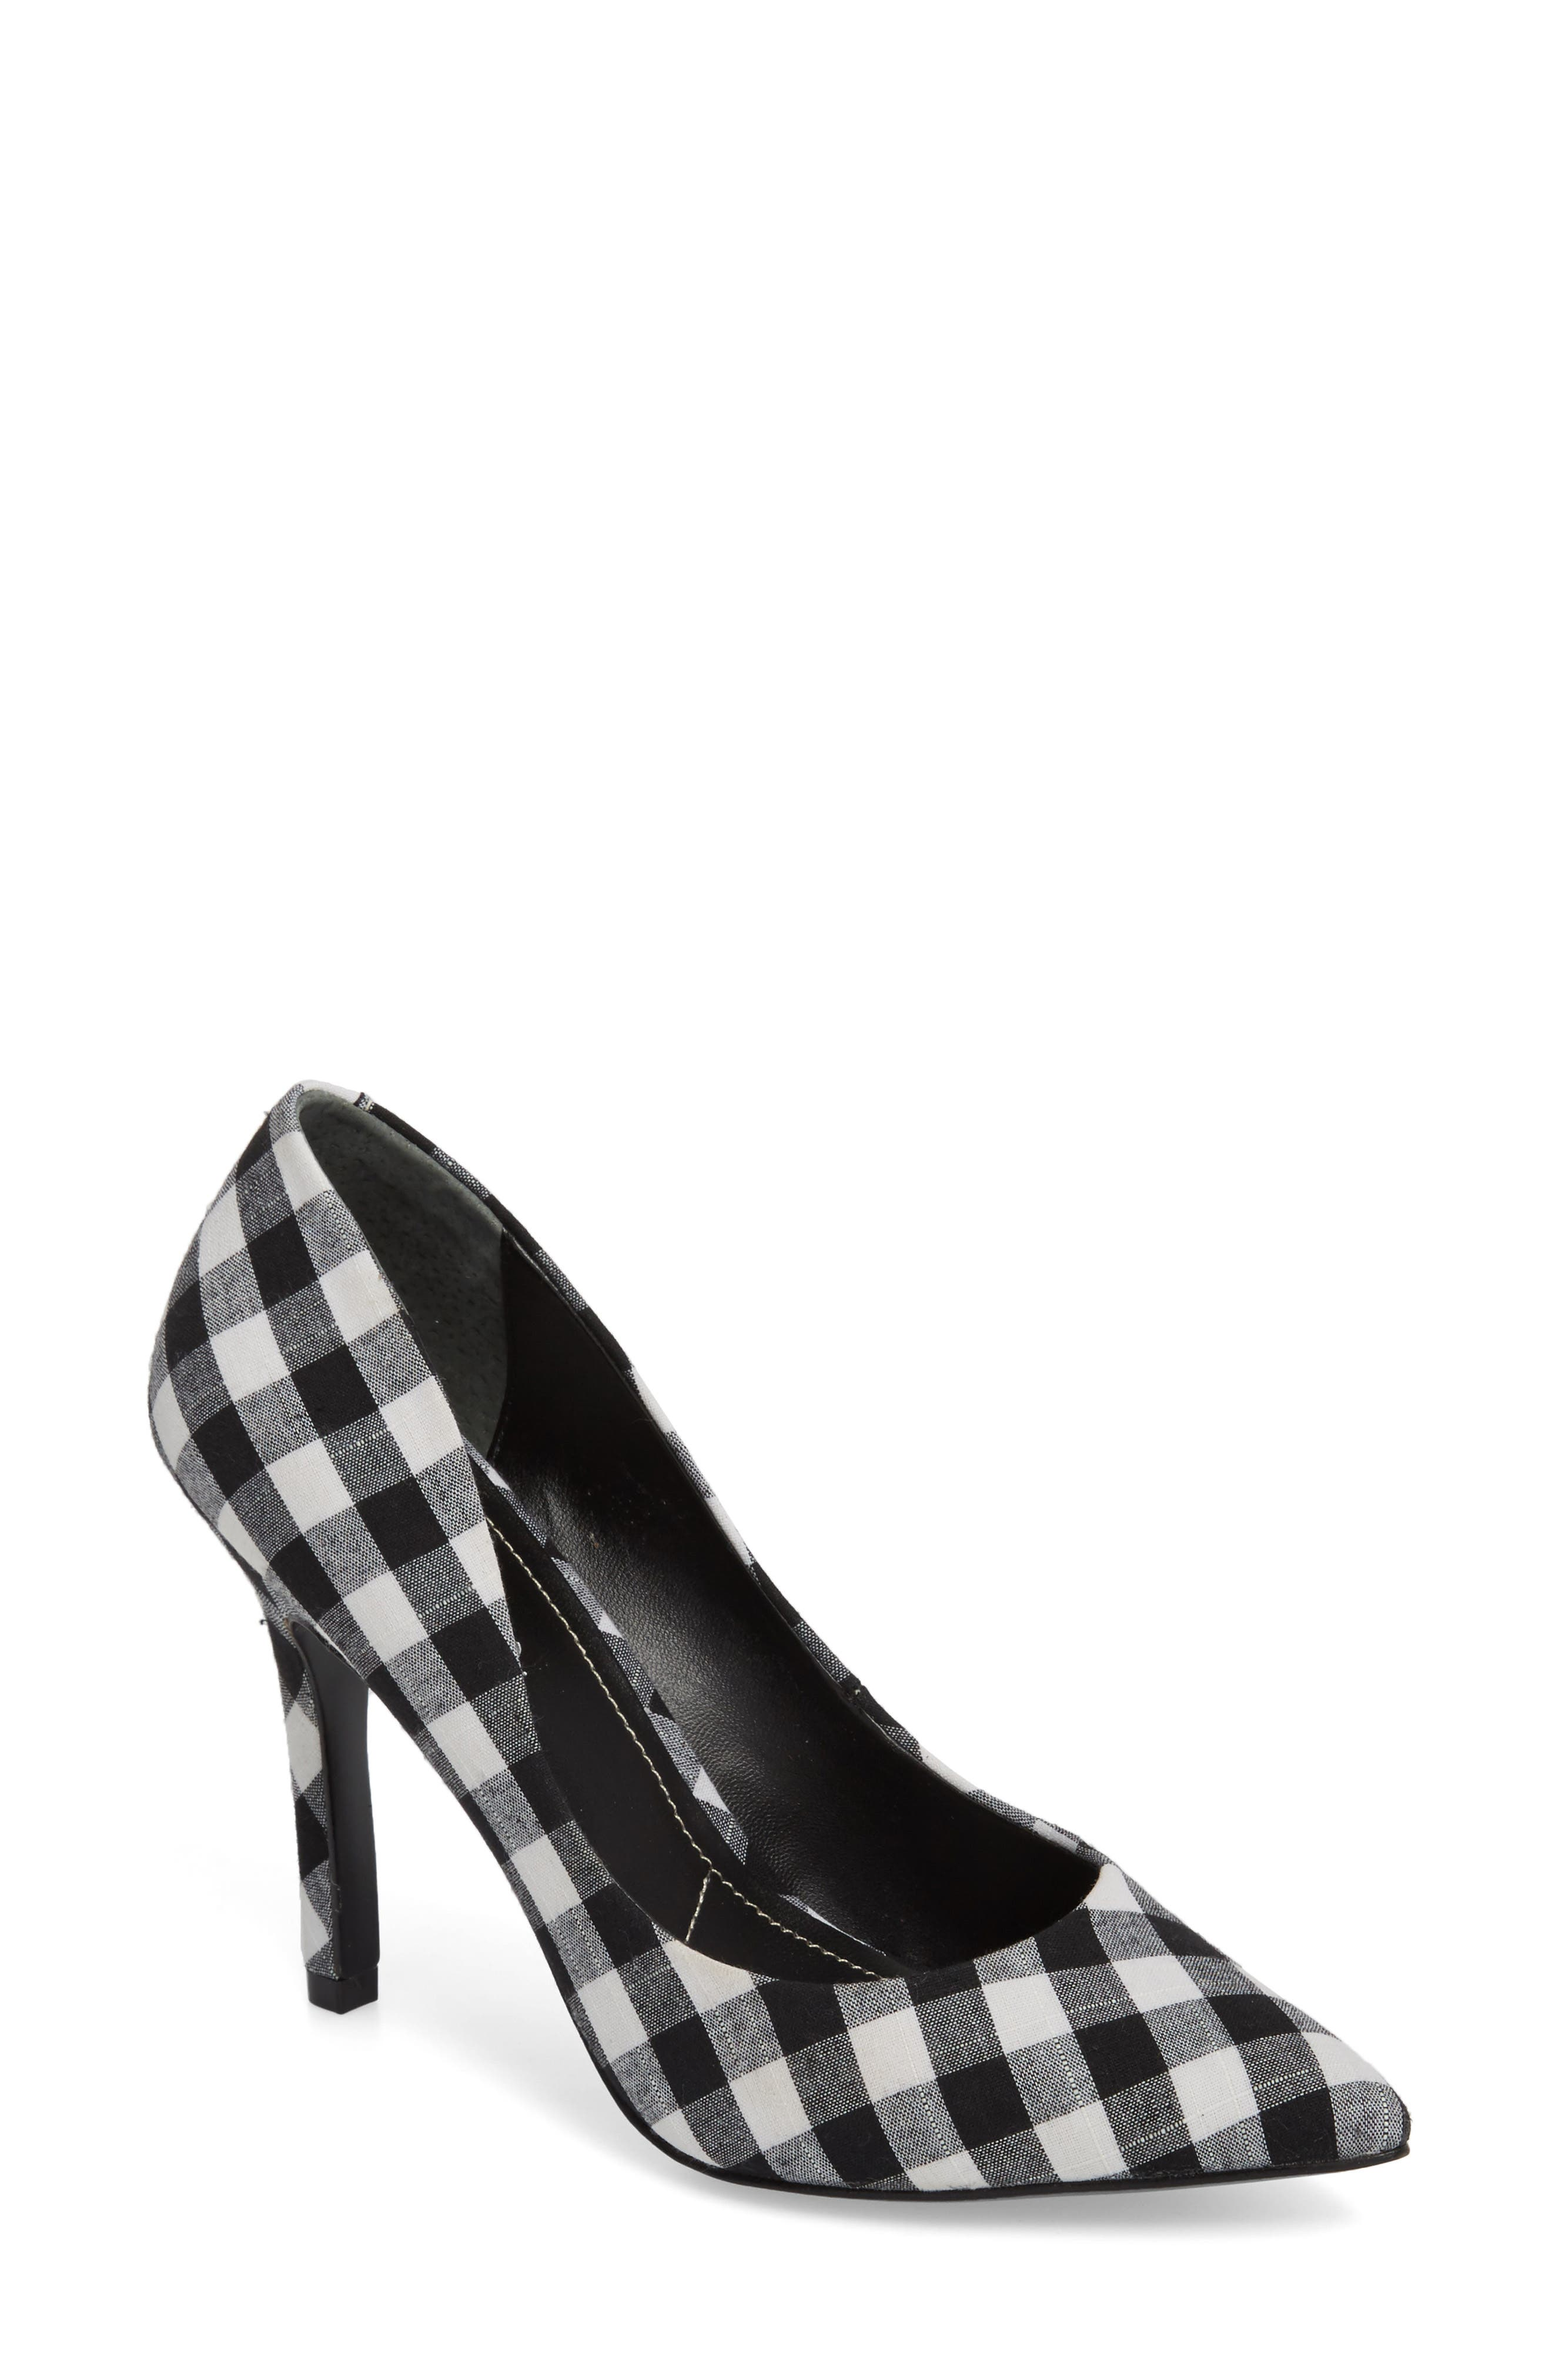 Maxx Pointy Toe Pump,                         Main,                         color, BLACK/ WHITE GINGHAM FABRIC